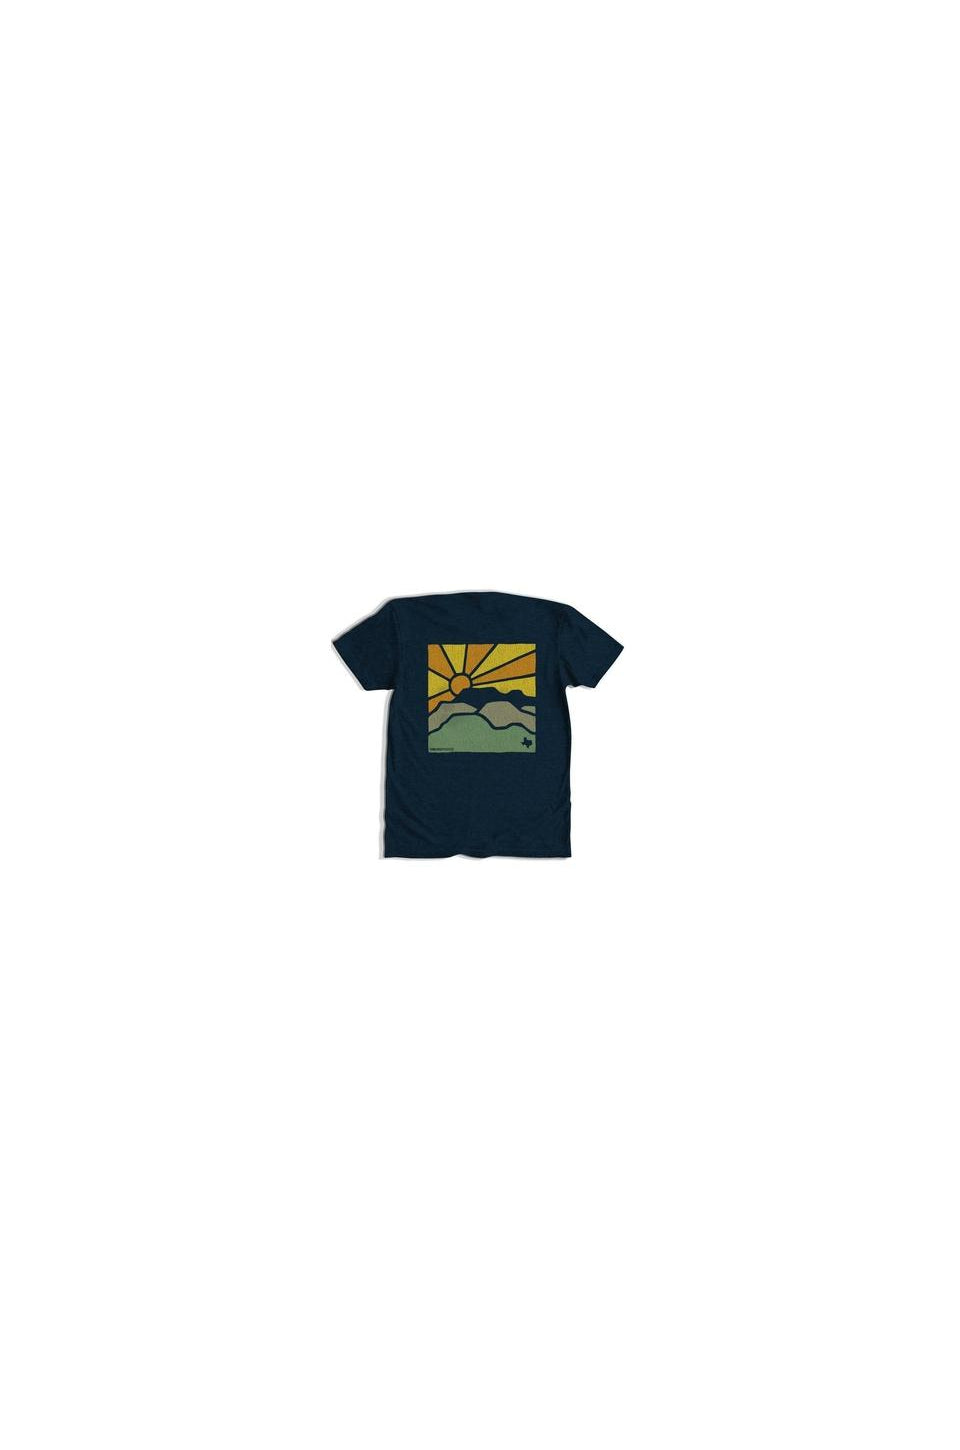 Tumbleweed West Texas Sunset T-Shirt In Navy